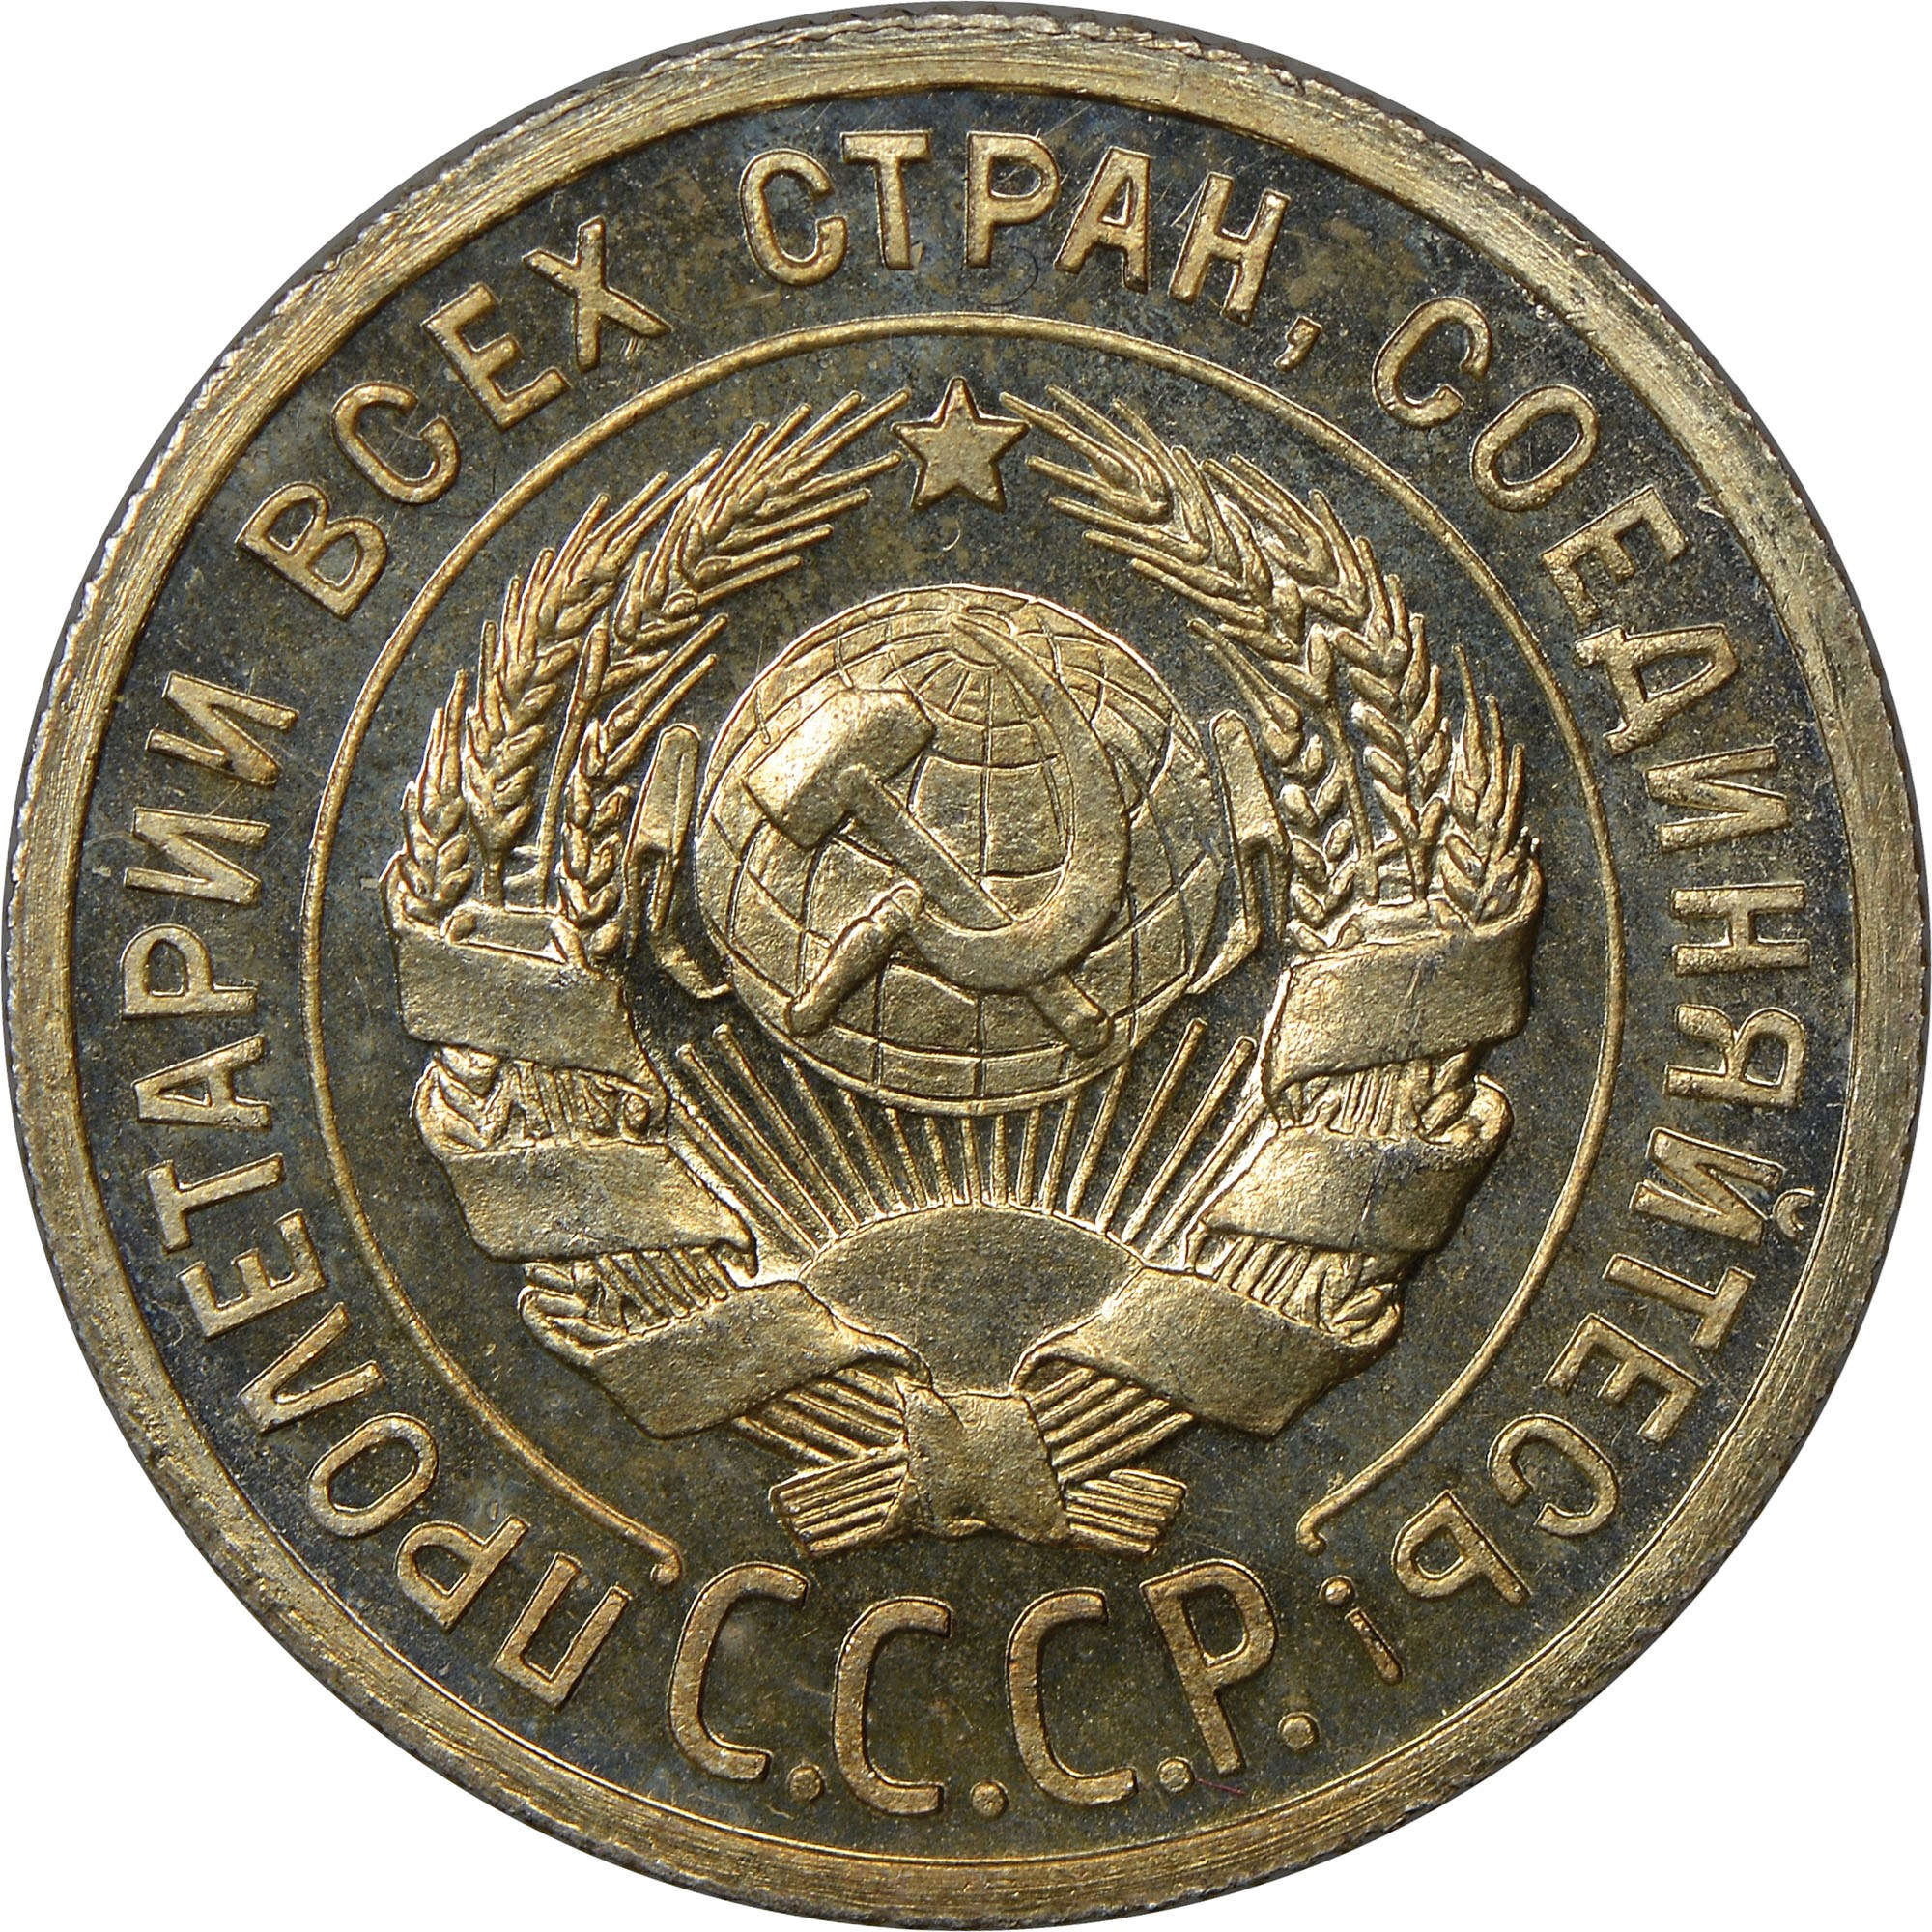 Coin 20 kopecks in 1961. The cost of coins of the USSR. Species 77